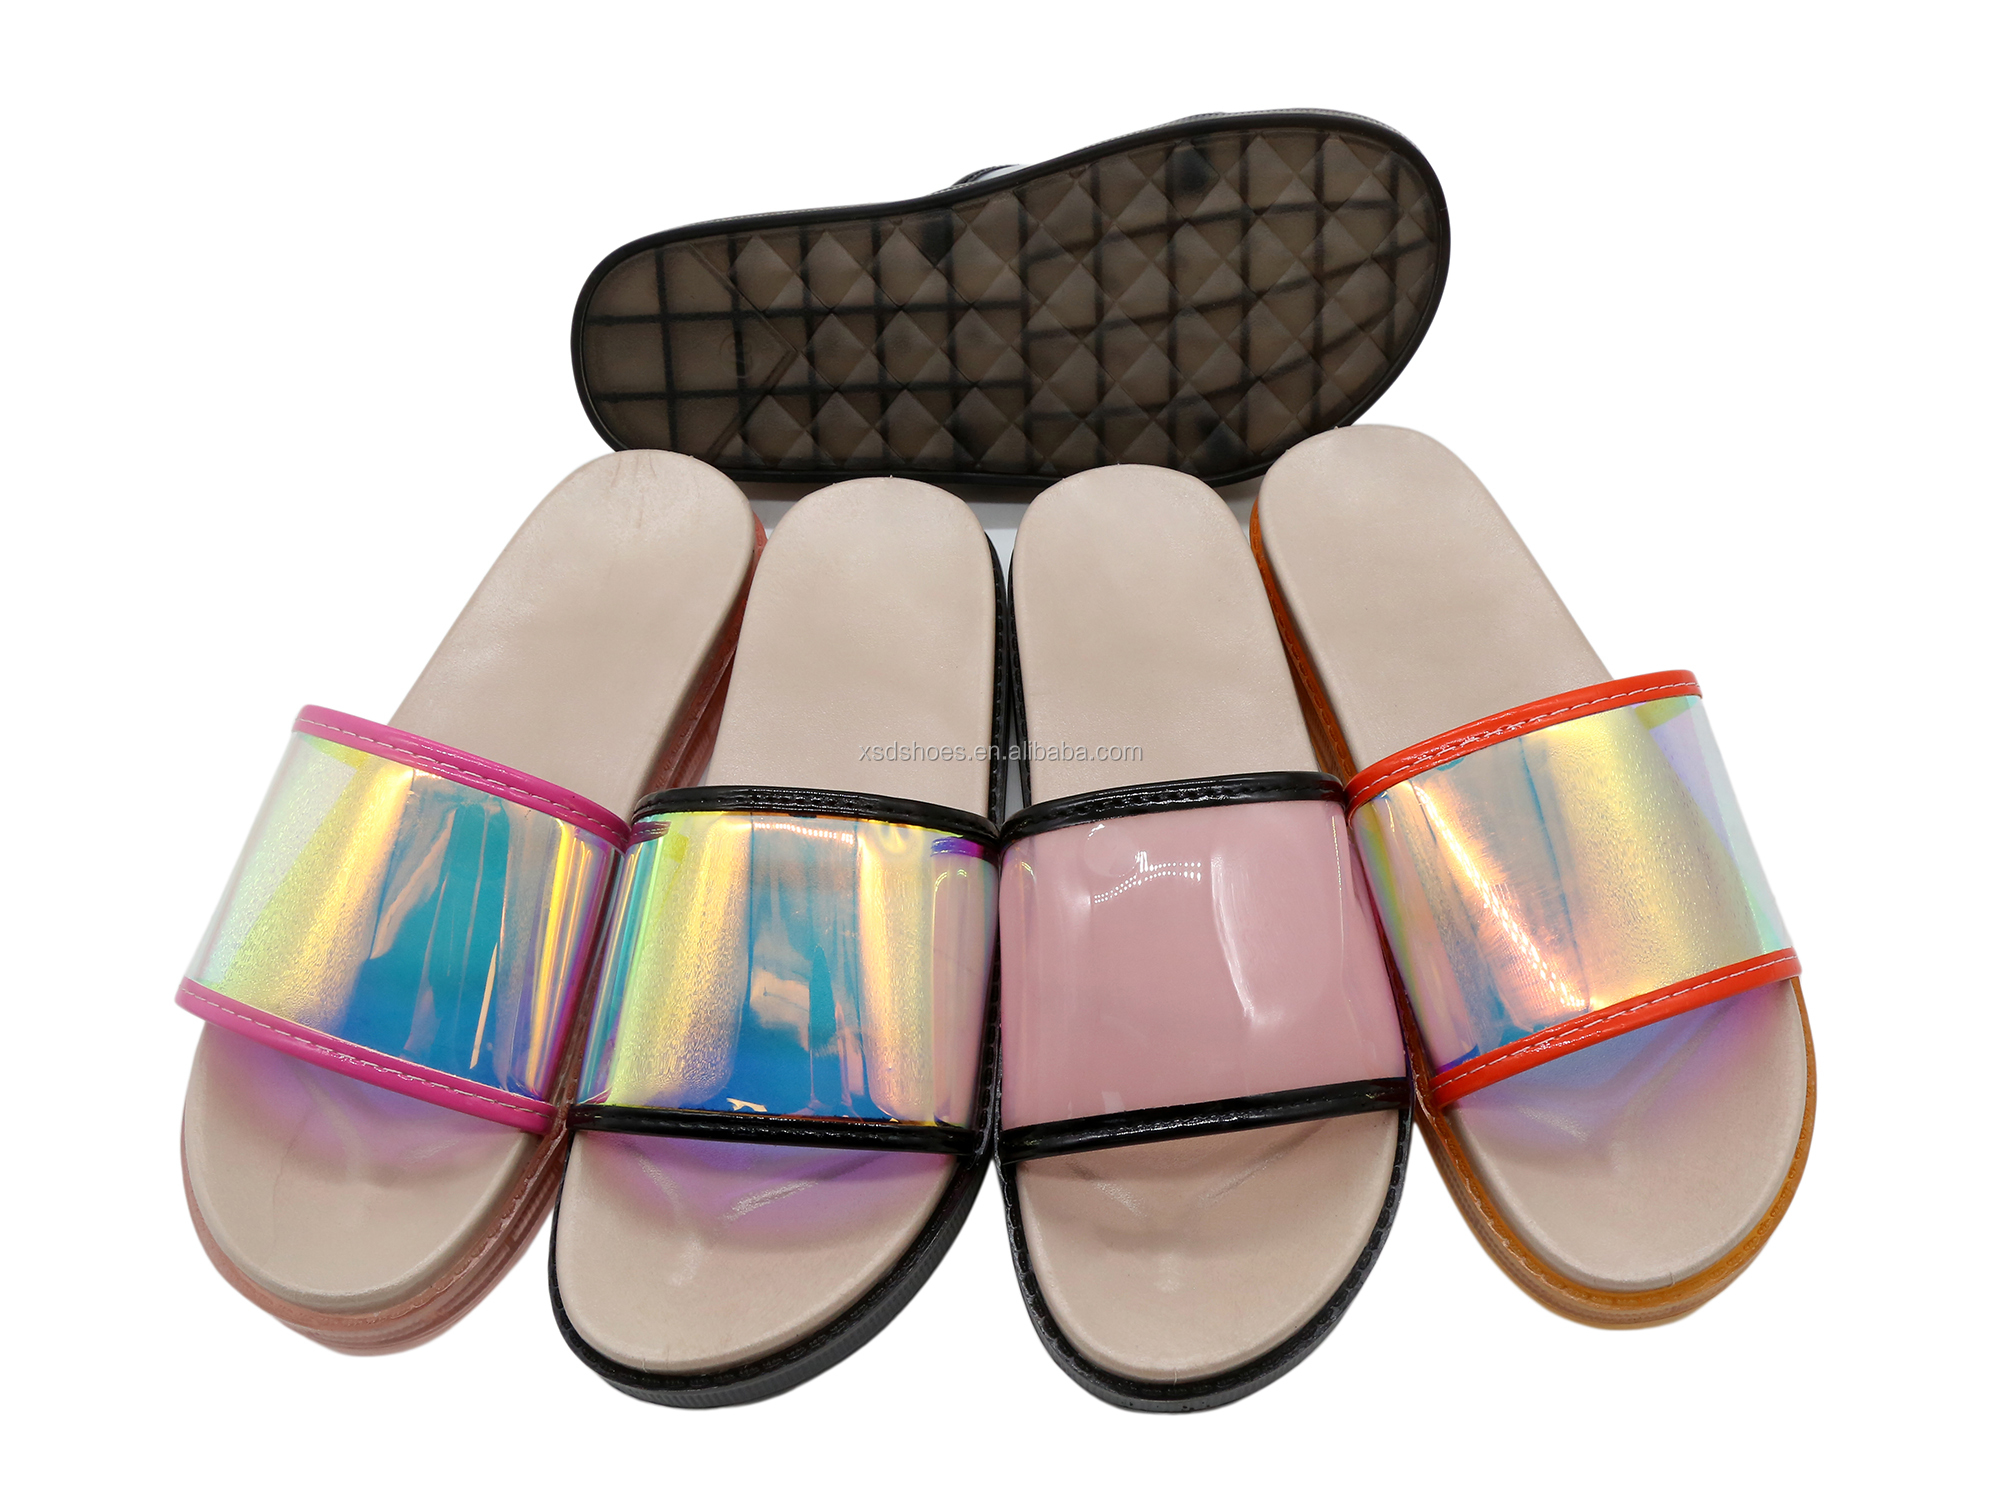 Latest PVC Design Hot Selling Jelly Sugar Color Summer Beach Sandals